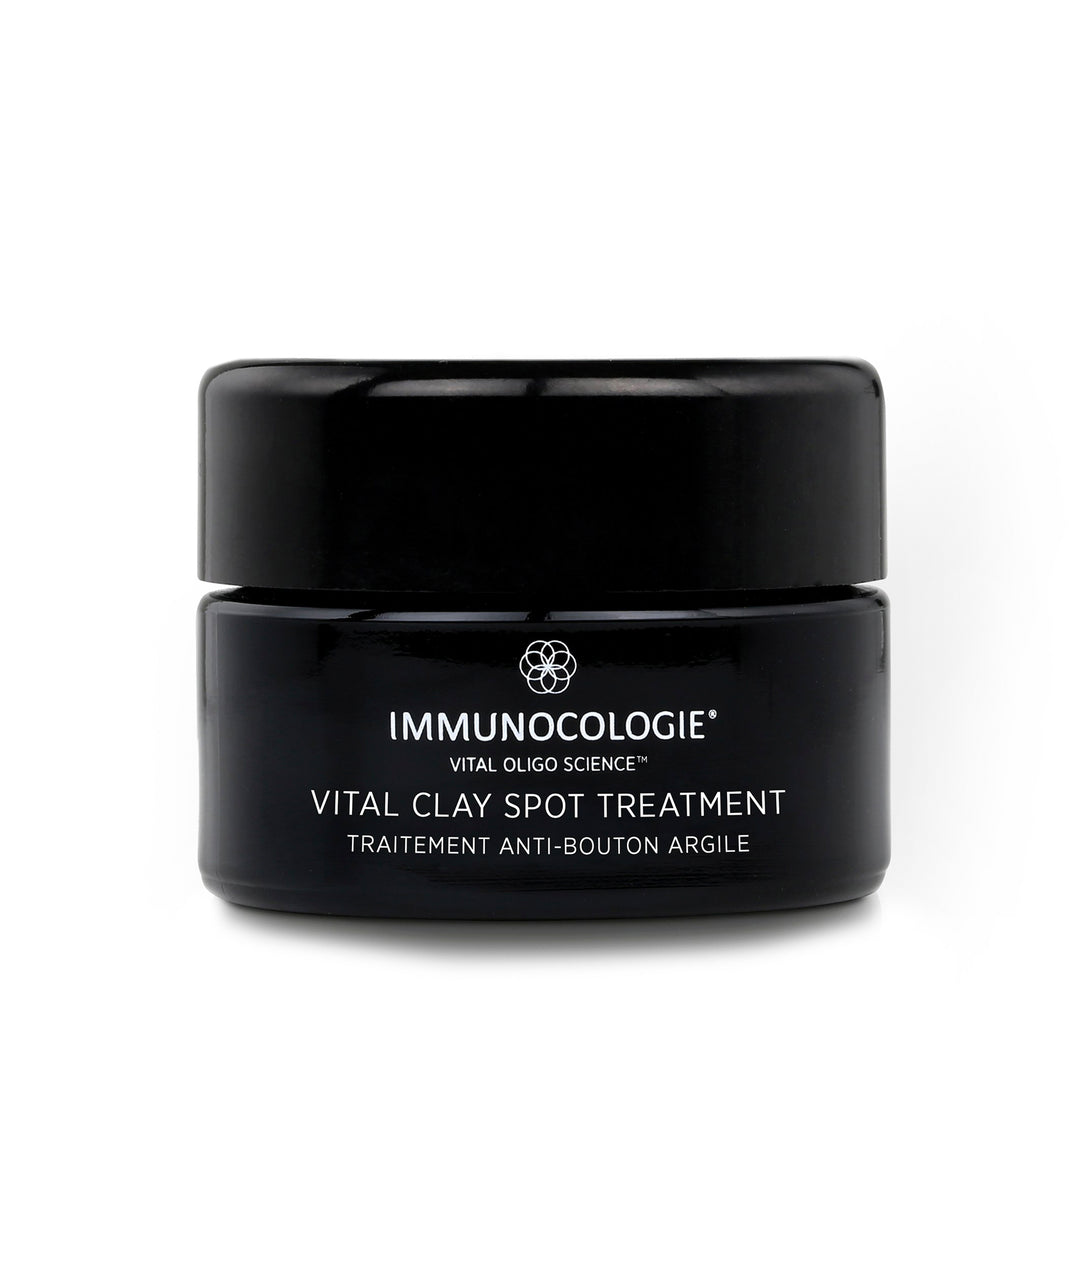 NEW Vital Clay Spot Treatment By Immunocologie